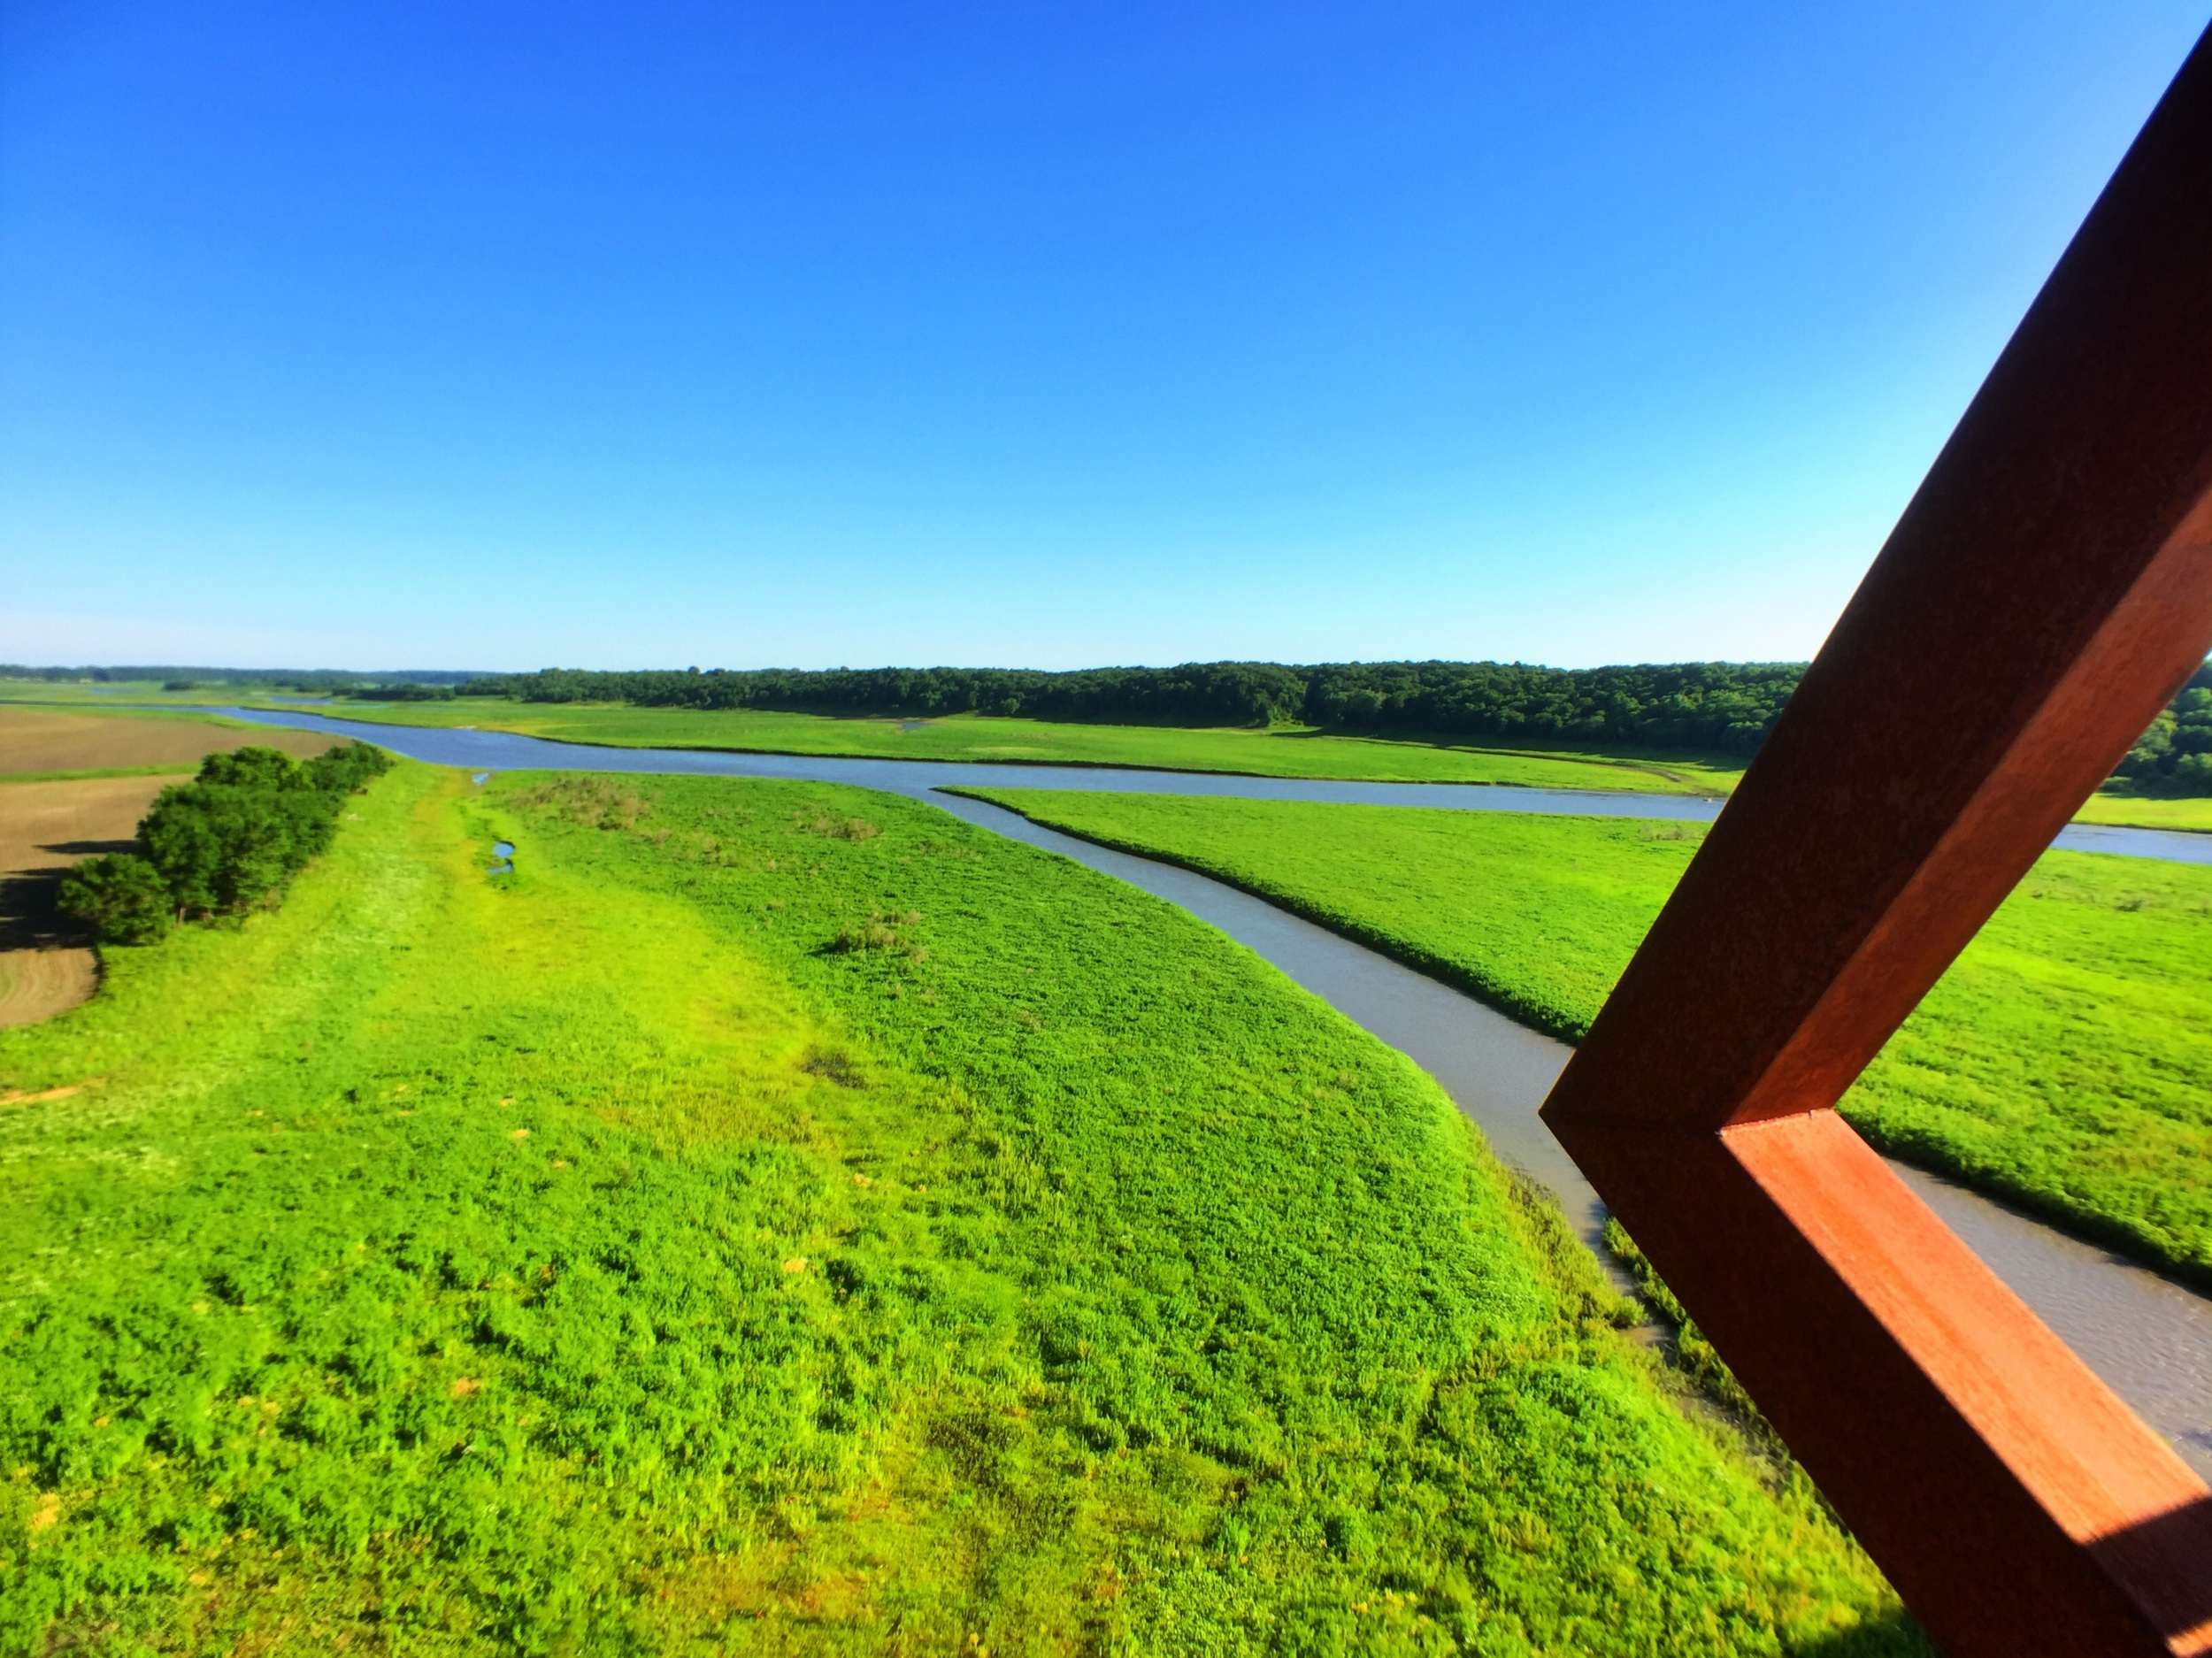 South from the High Trestle Bridge